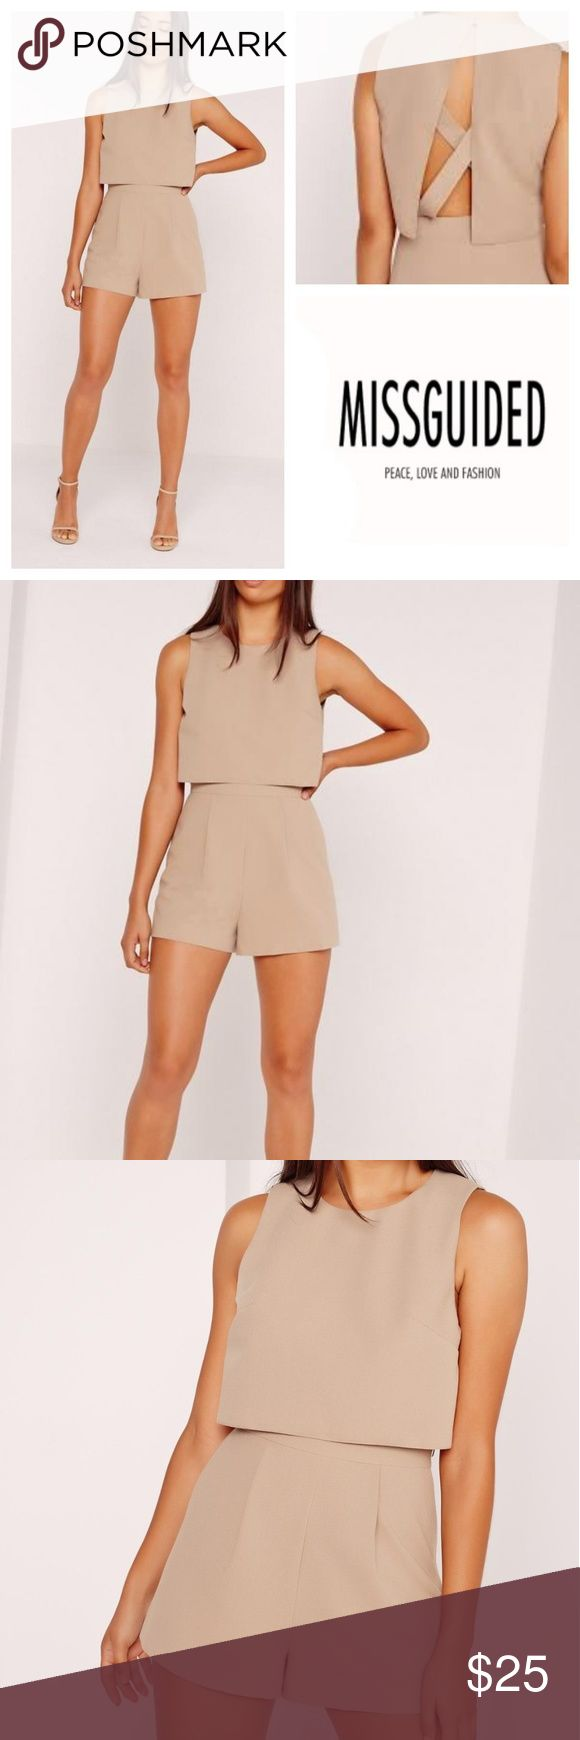 """Missguided Crepe Double Layer Playsuit simple, effective and oh so chic, this beaut little playsuit packs a serious punch. in a camel brown tone, overlay style and cross back detail, this all in one scores some serious style points and is the perfect all rounder for any occassion. business at the front, party at the back.   80% polyester 4% elastane 16% viscose  New with tags. Size US 2 Bust 17""""  Waist 12.5"""" Length 27.5"""" Inseam 2"""" Missguided Pants Jumpsuits & Rompers"""